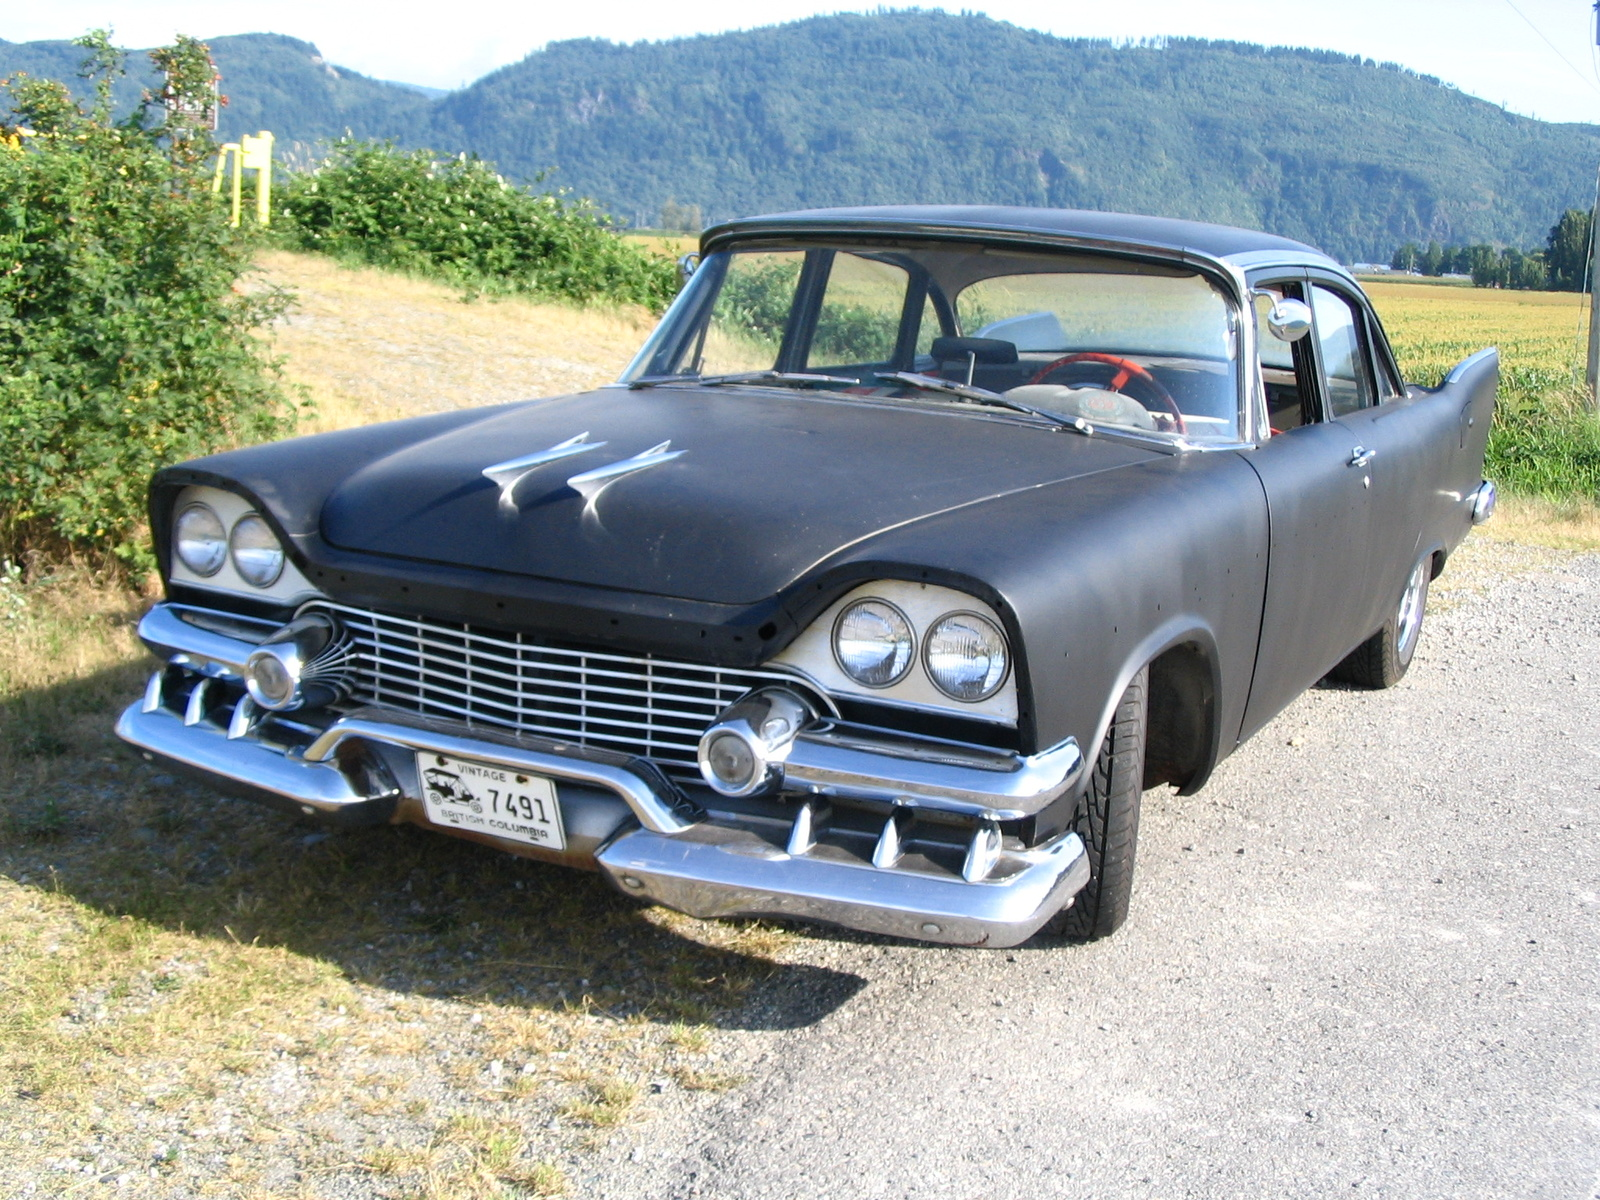 1957 DODGE D 100 SWEPTSIDE PICKUP 151375 additionally 29327 B Body Field Of Dreams And They Re For Sale additionally 1957 CHRYSLER NEW YORKER CONVERTIBLE 15526 likewise History moreover 1958 Dodge Coro  Pictures C6542 pi9411494. on 1958 dodge power wagon